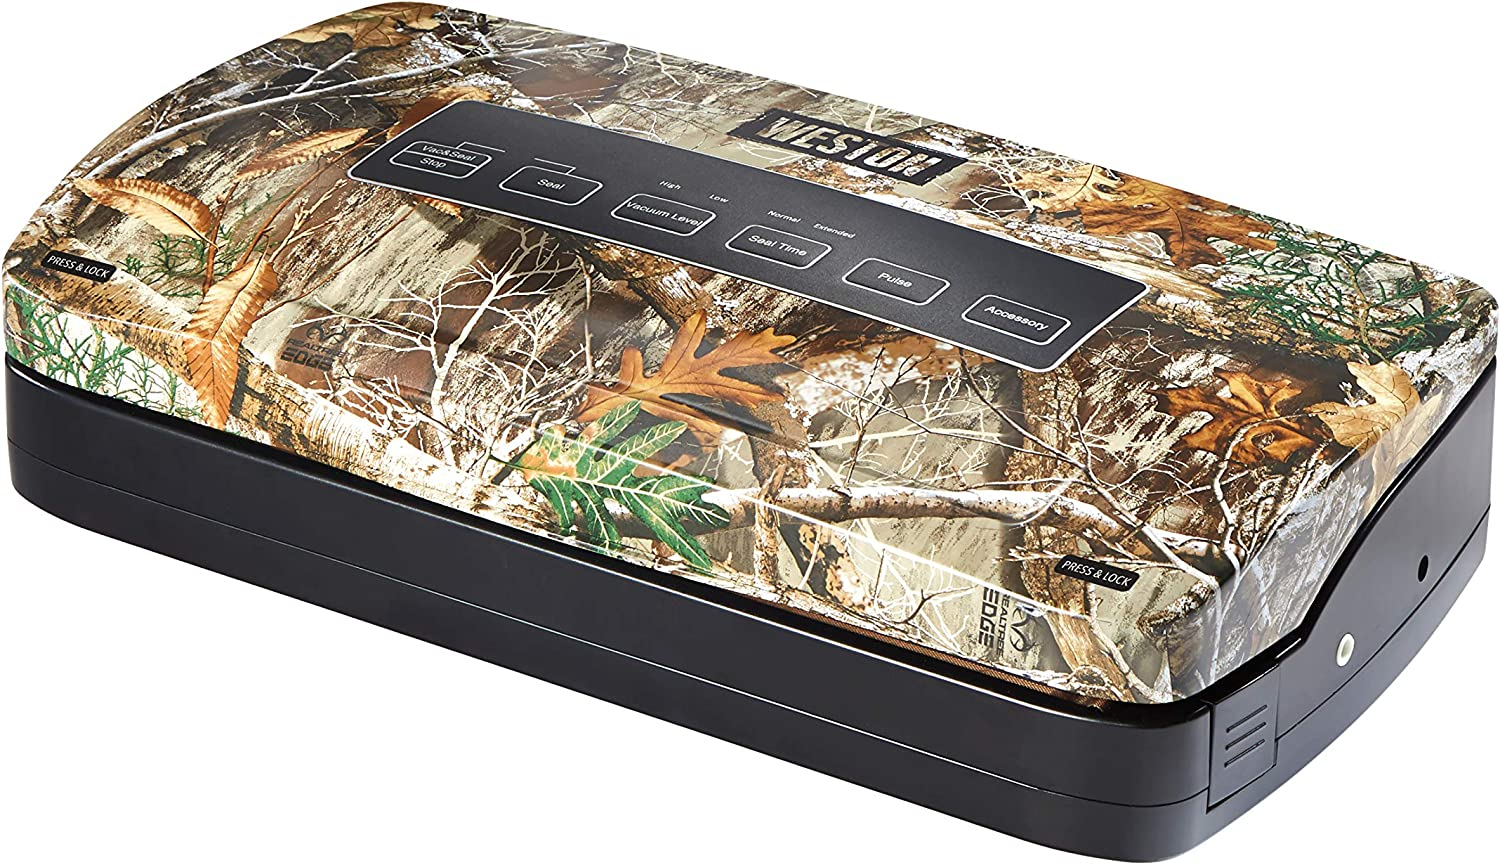 Weston 65-3001-RE Realtree Edge Vacuum Sealer with Roll Storage and Bag Cutter, Black (65-3001-R)